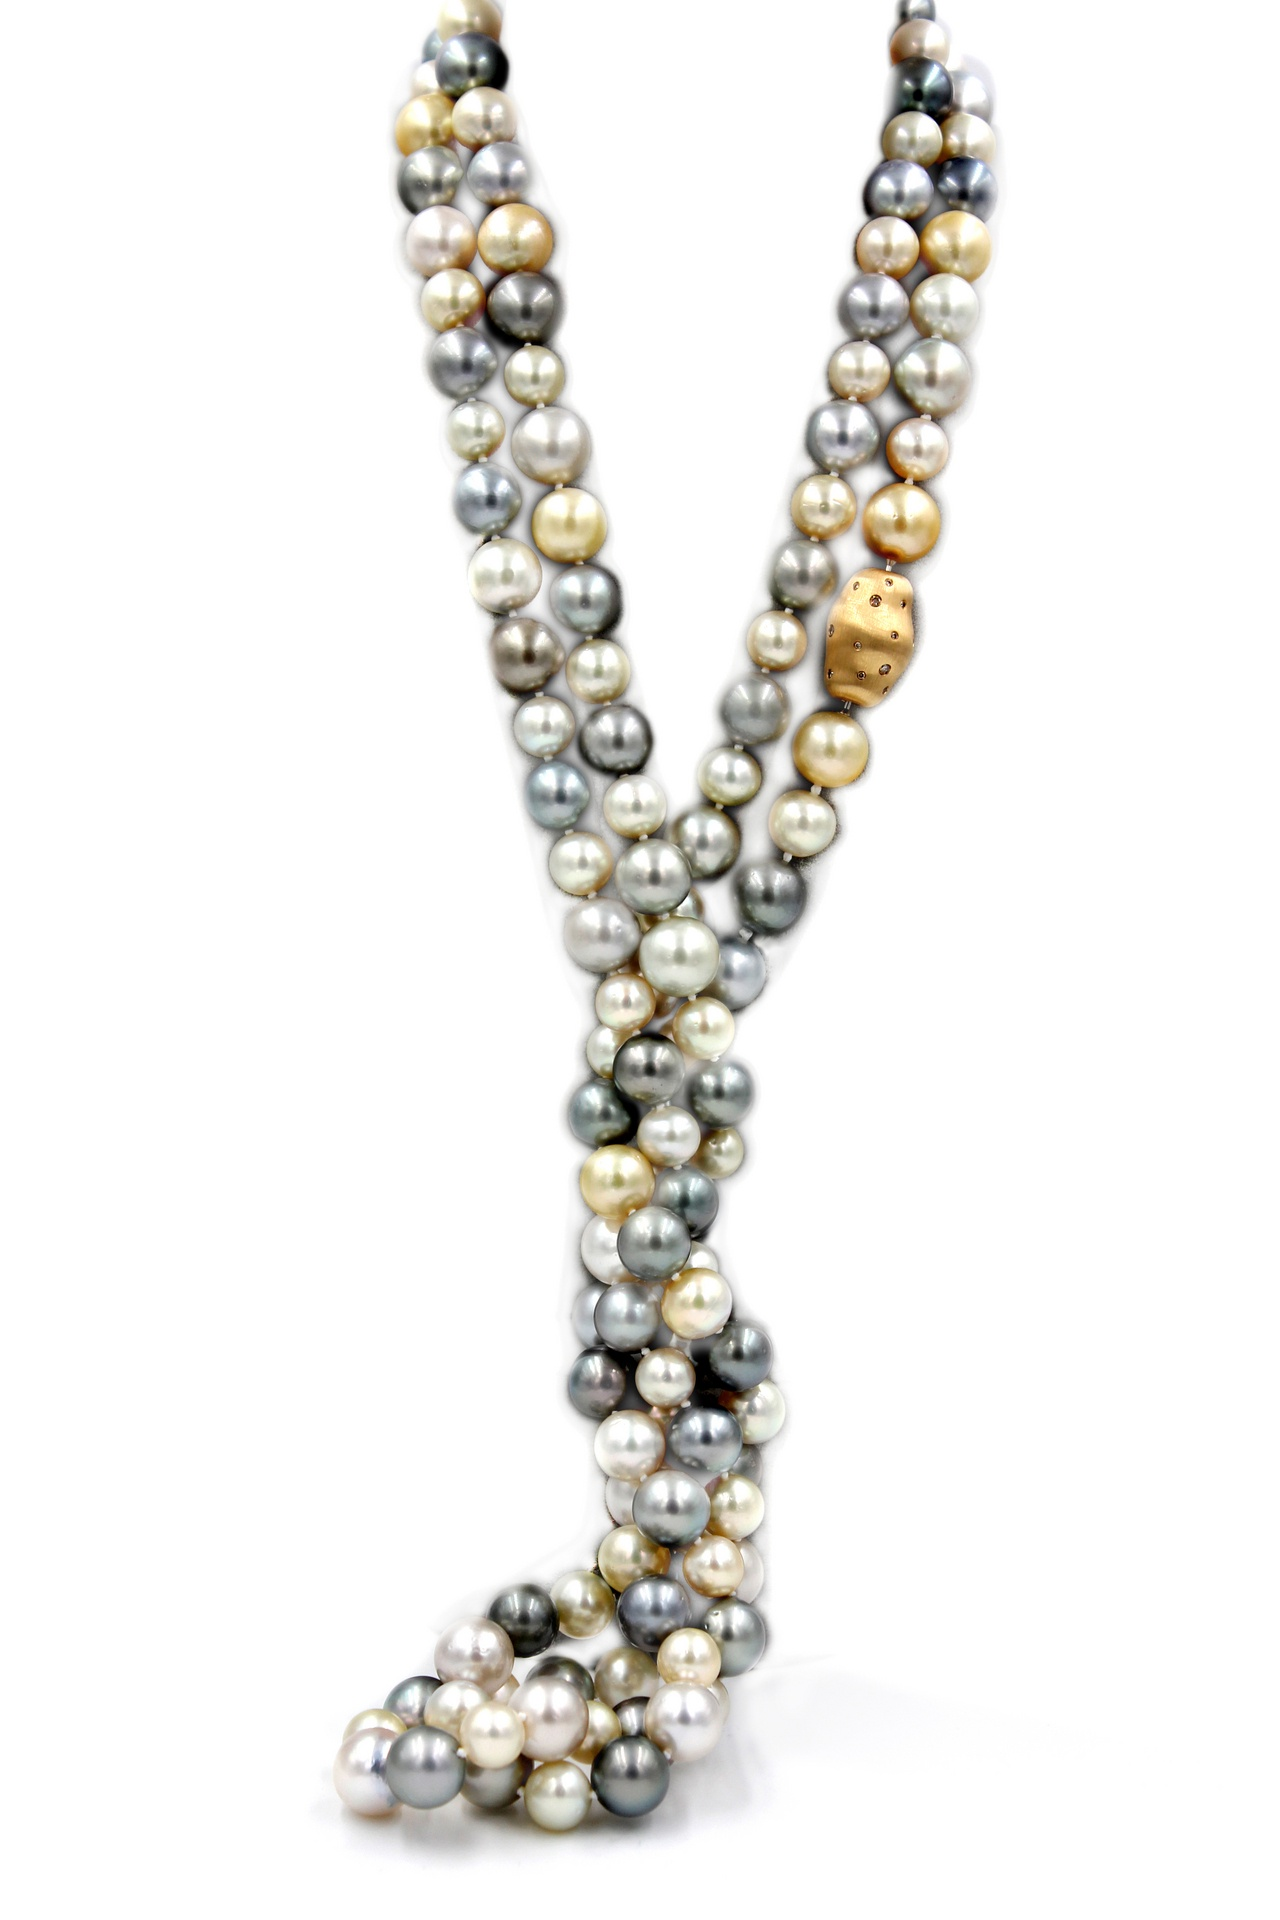 Variety of South Sea Pearls Necklace with Gold Diamond Clasp